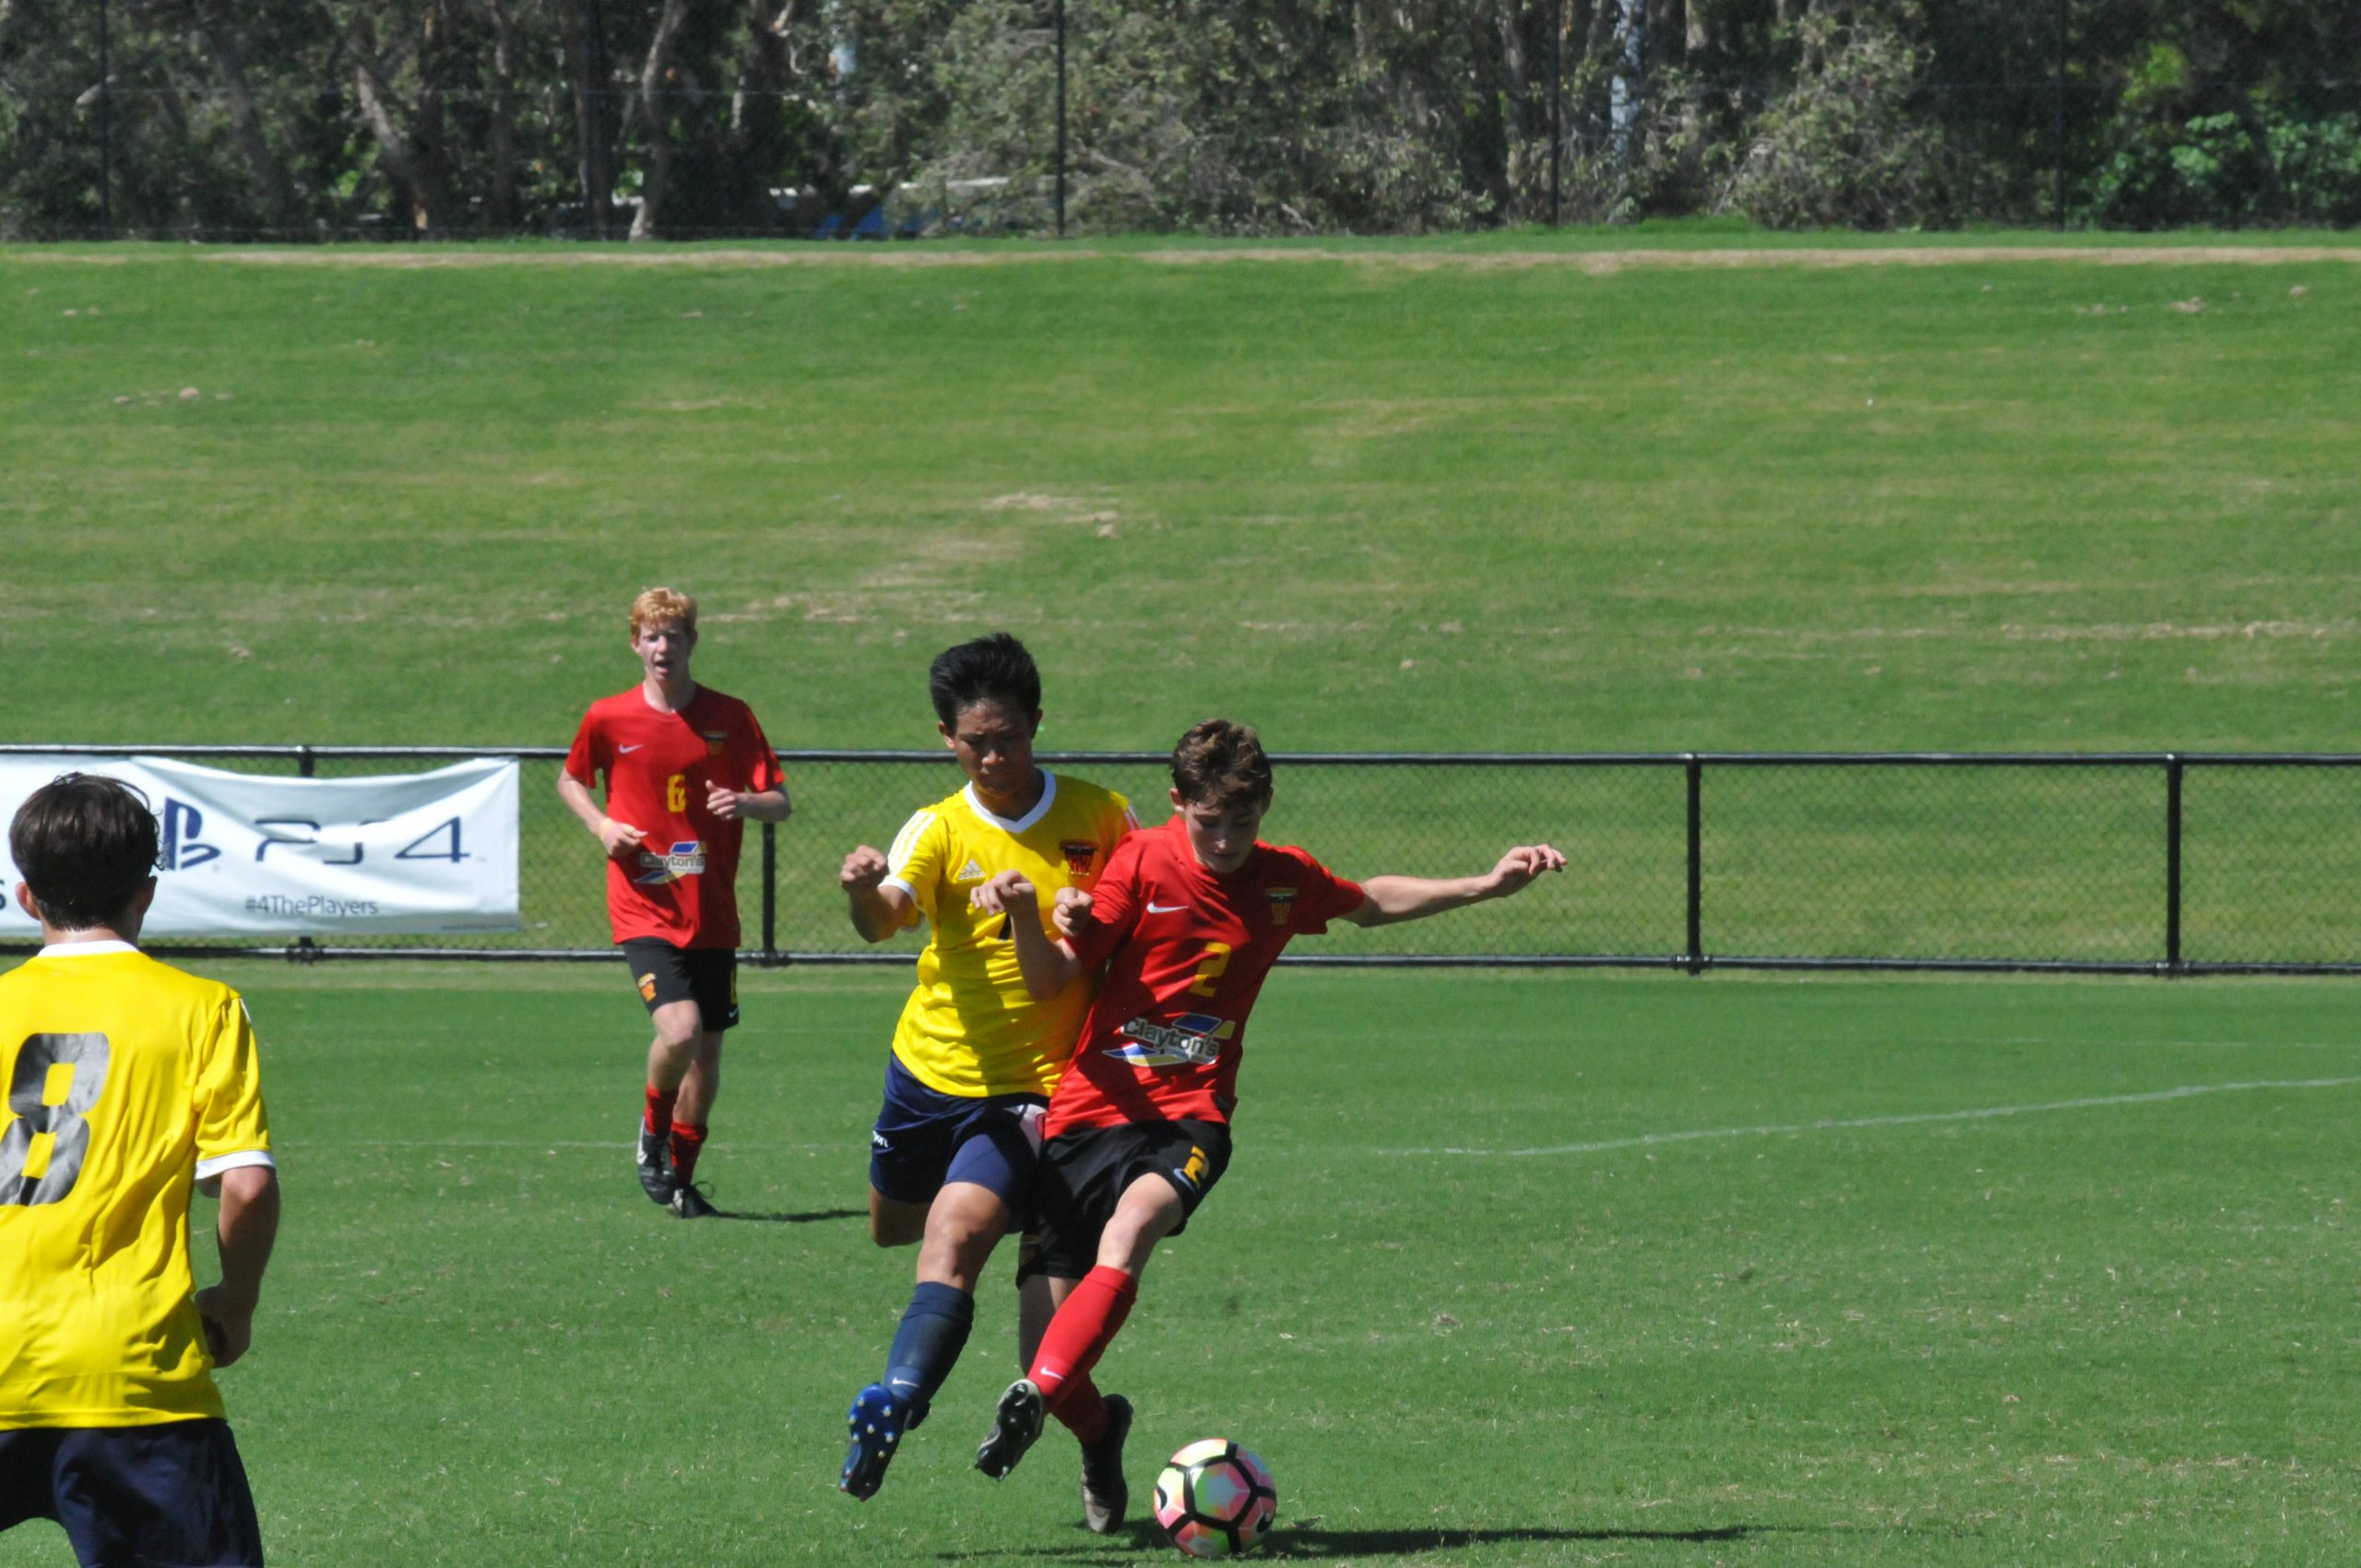 Junior Match Reports – 26 March 2017